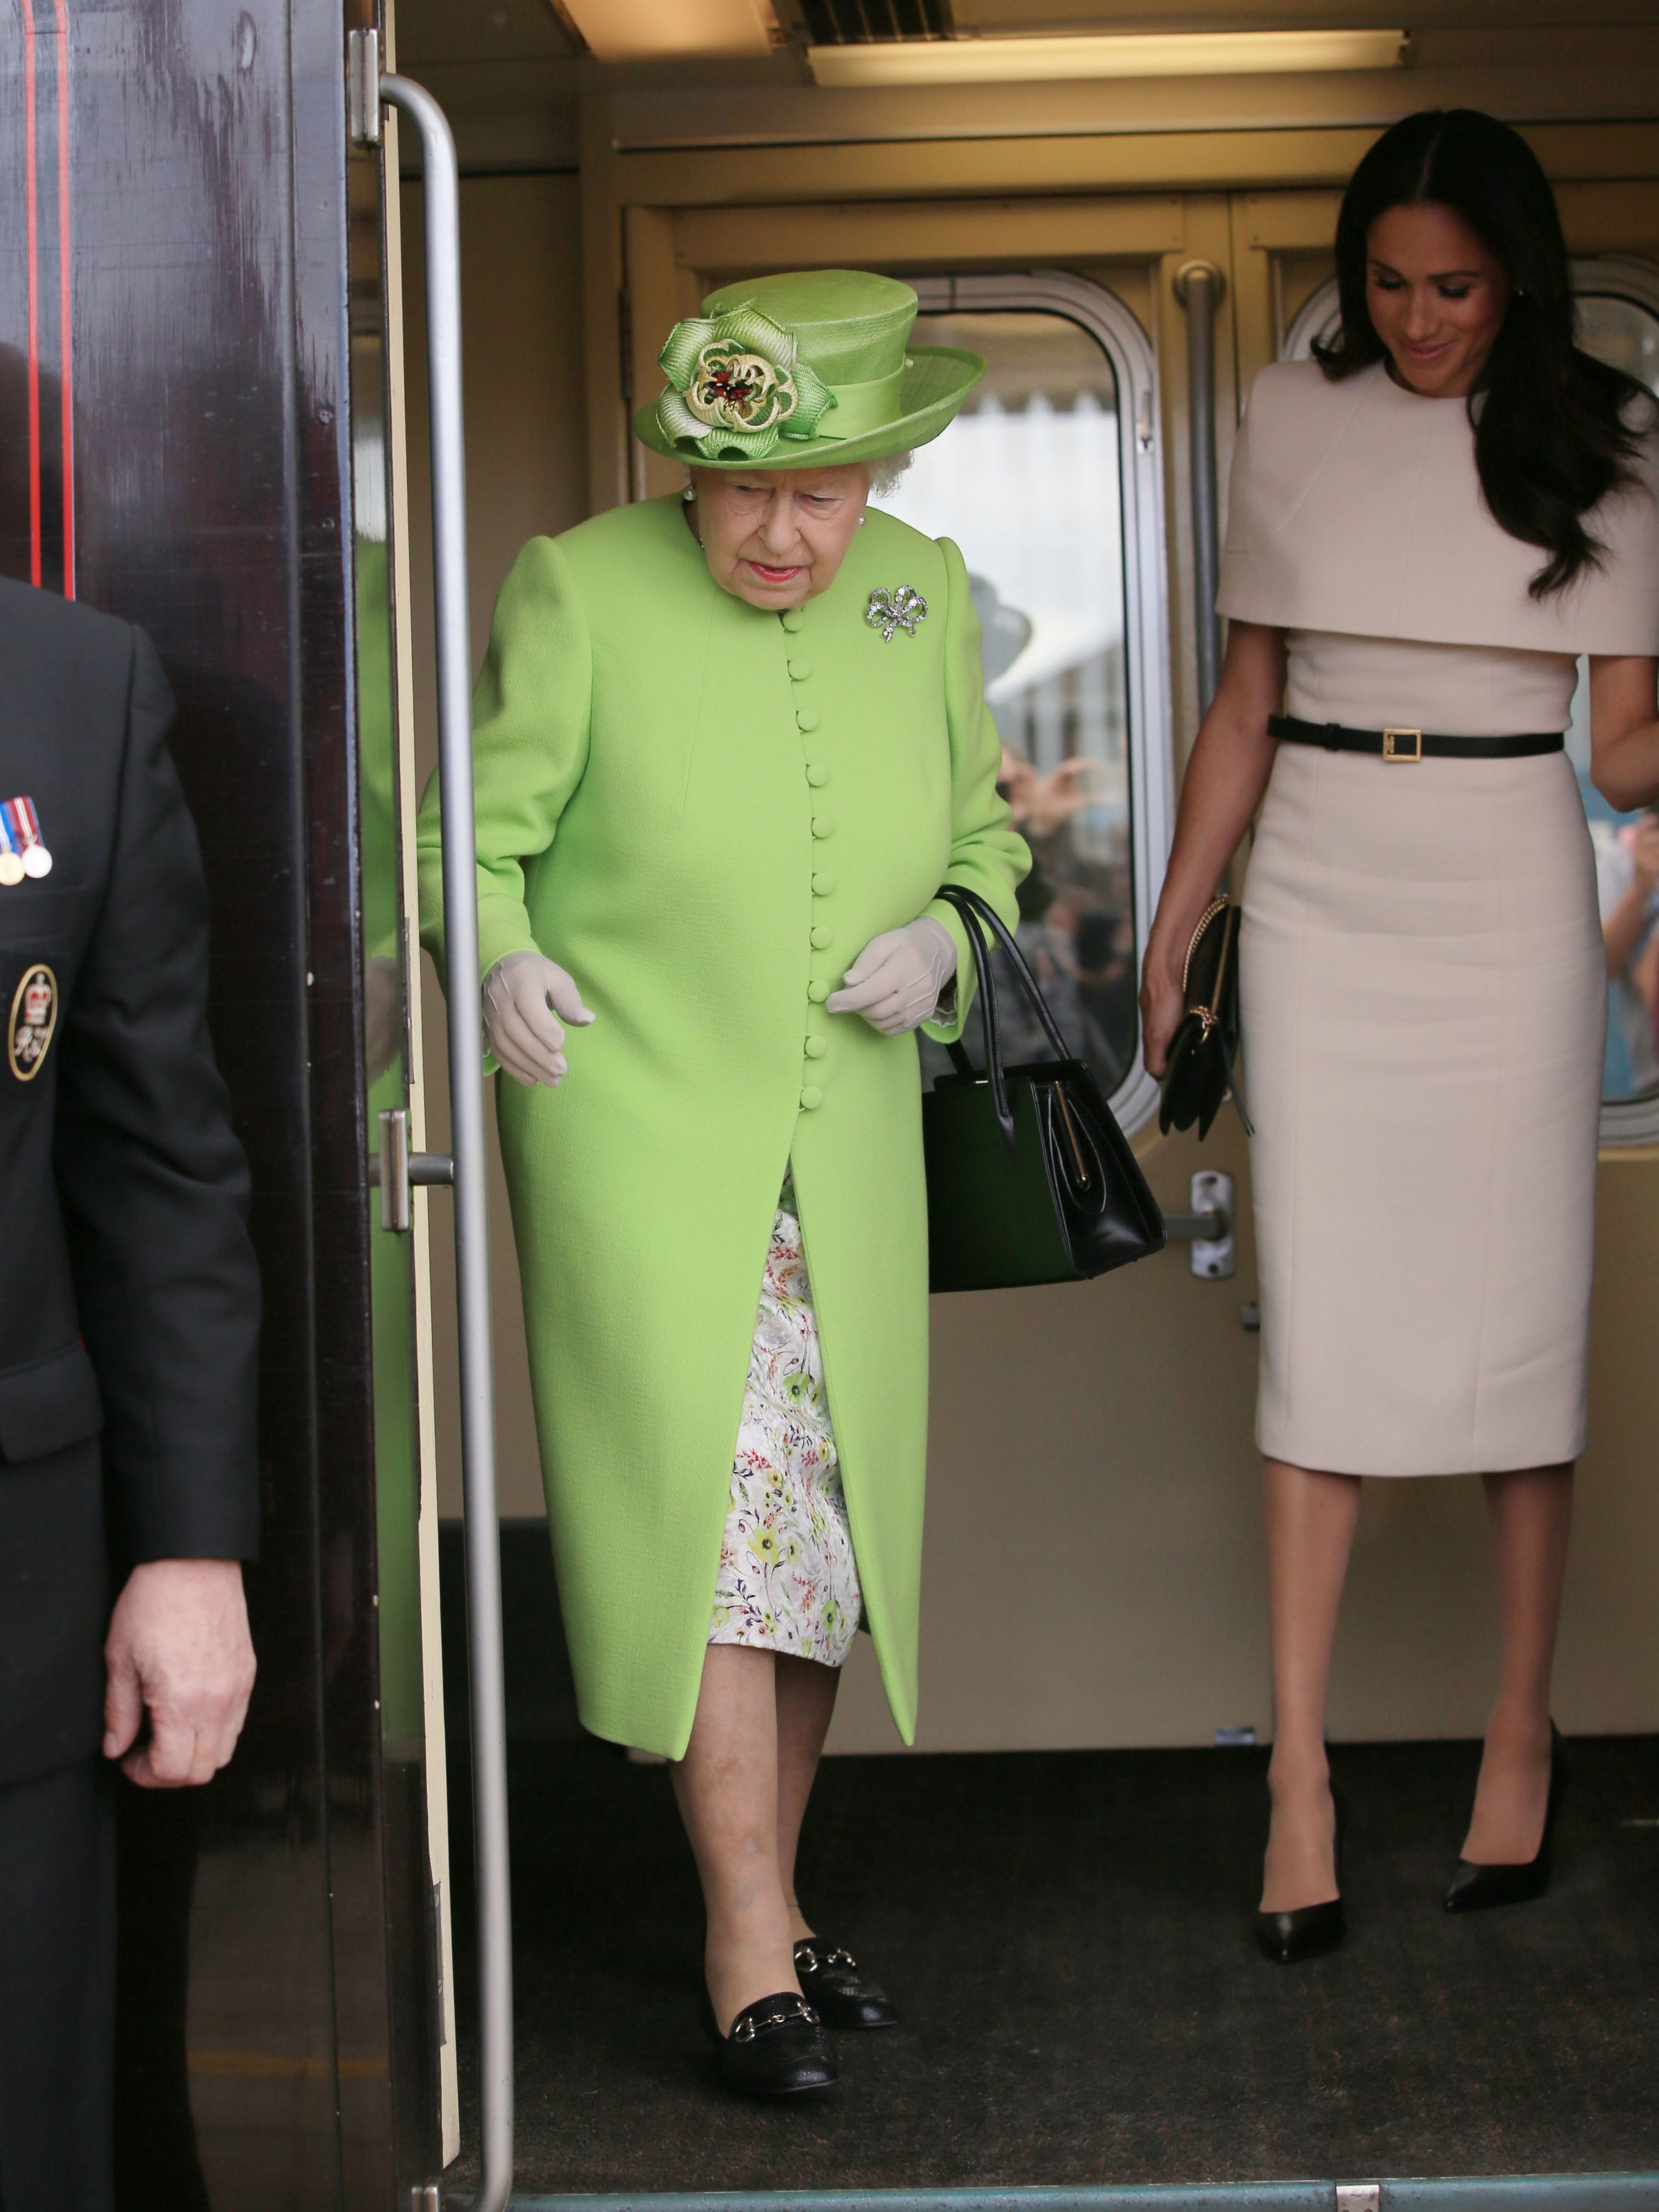 Queen Elizabeth II and Duchess Meghan arrive in Cheshire by Royal Train on June 14, 2018. It was Meghan's first solo engagement with Her Majesty, just a month after her wedding to Prince Harry.